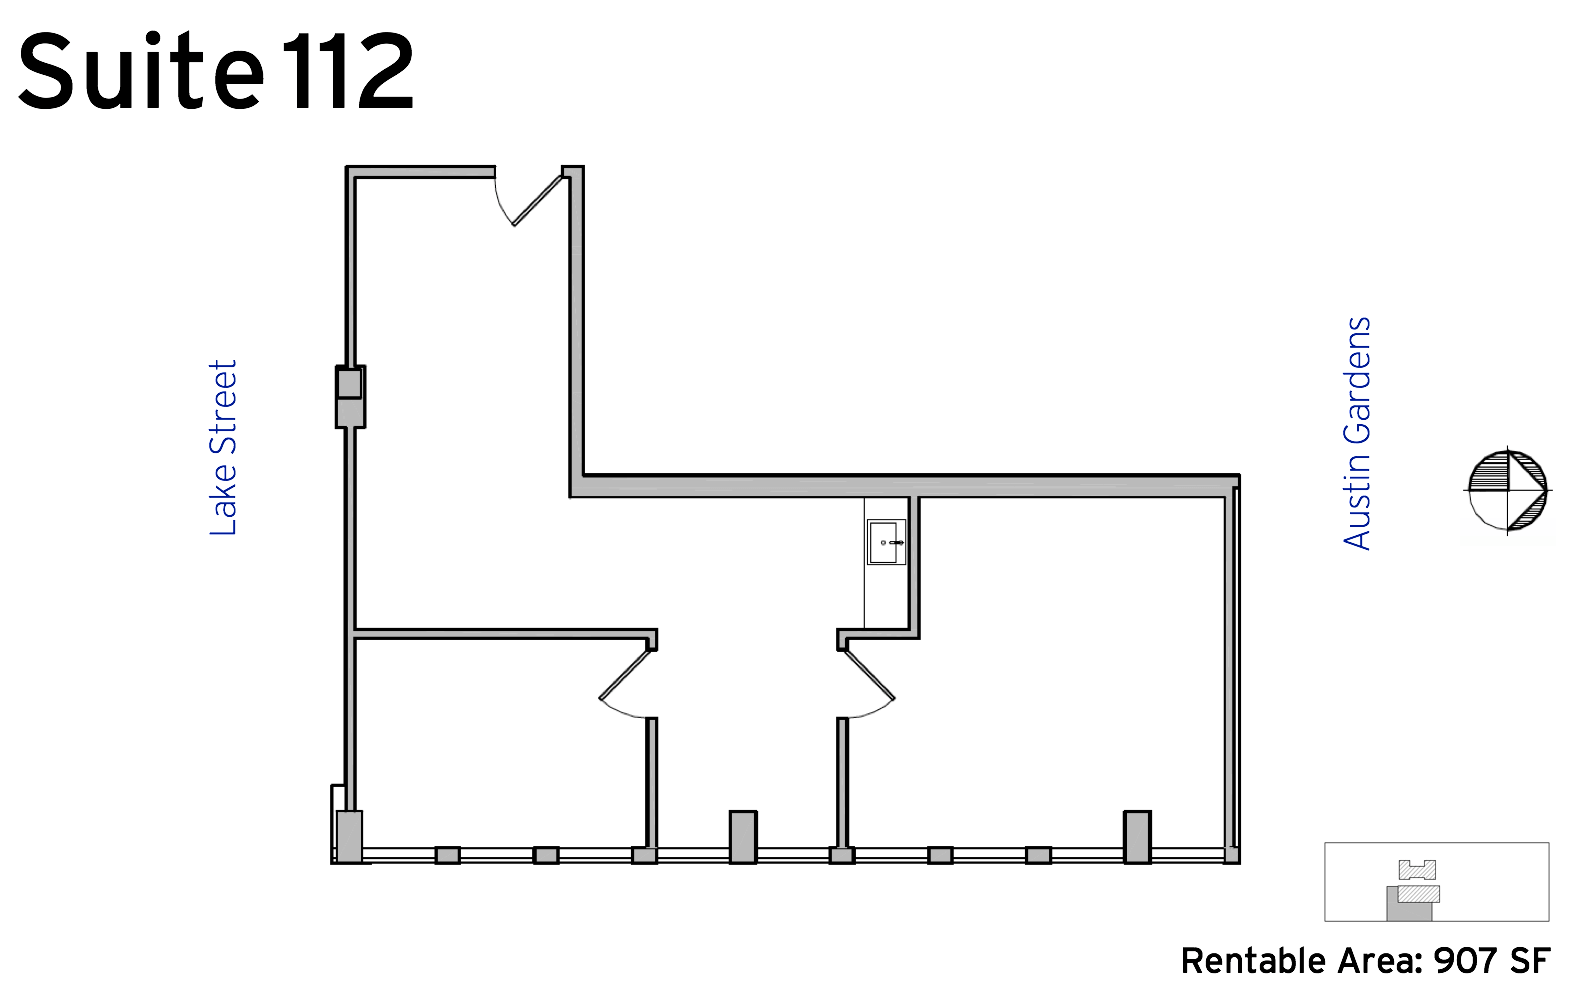 Suite 112 - 1010 Lake Street available office space floor plan